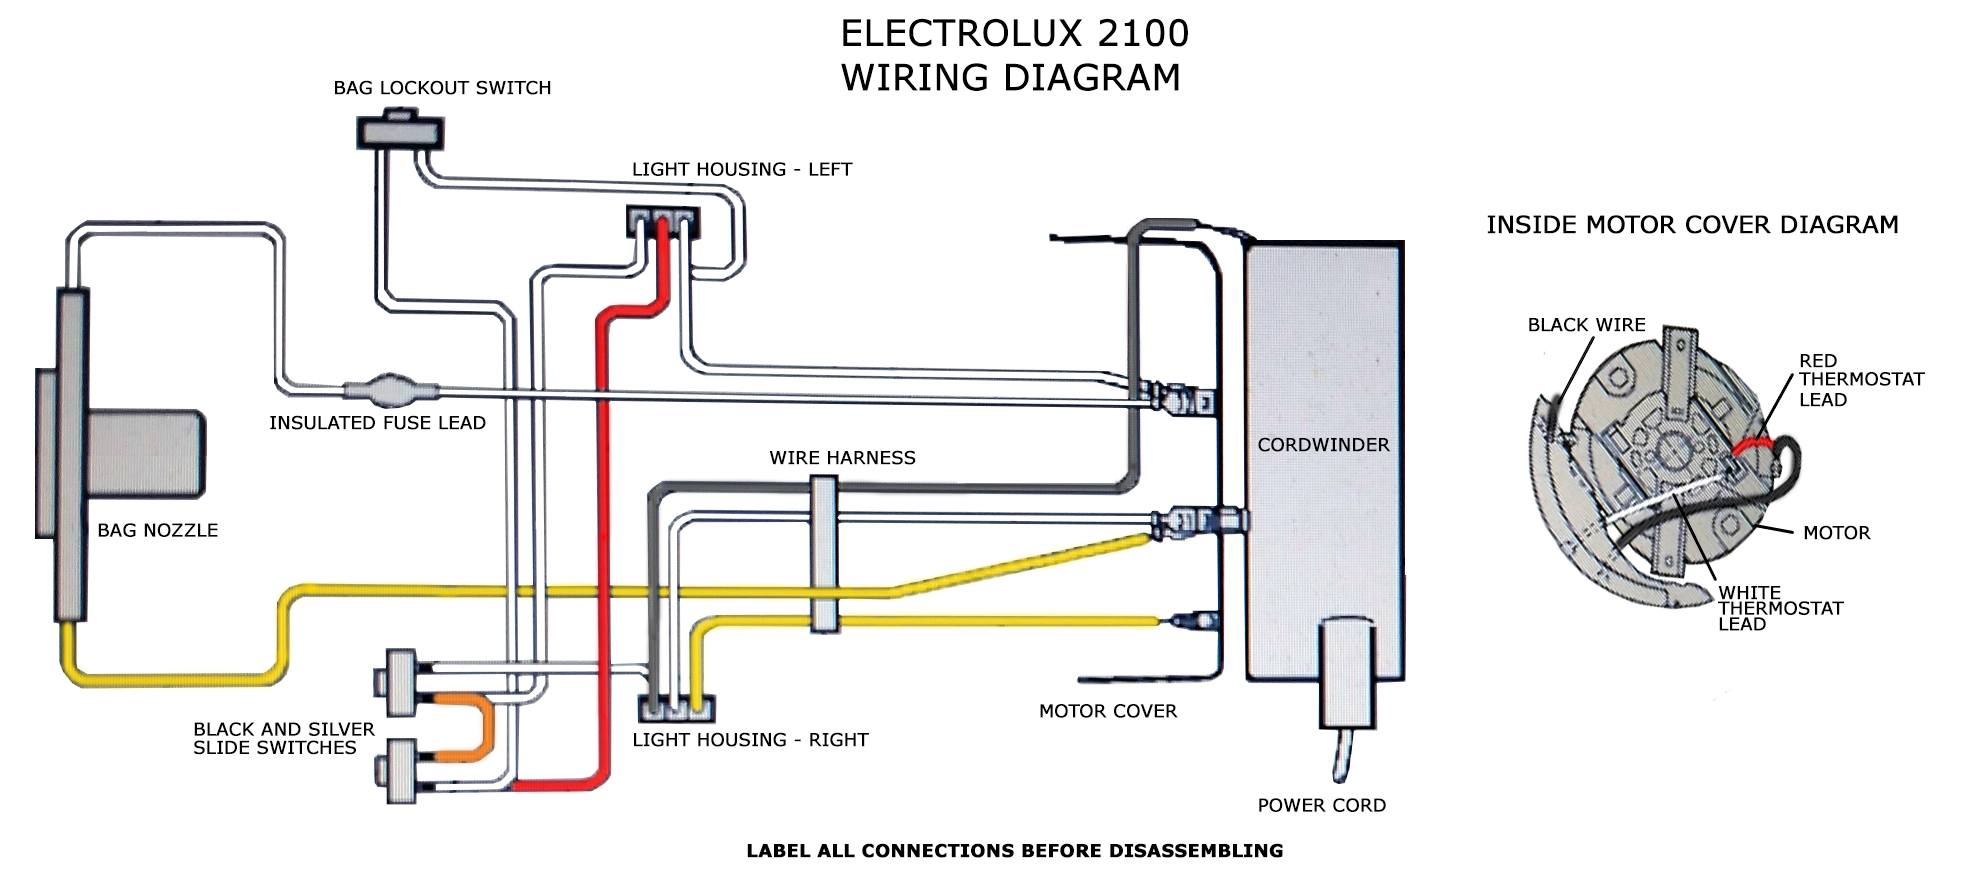 2100 wiring diagram electrolux 2100 wiring diagram vacuum cleaner motor wiring diagram at aneh.co